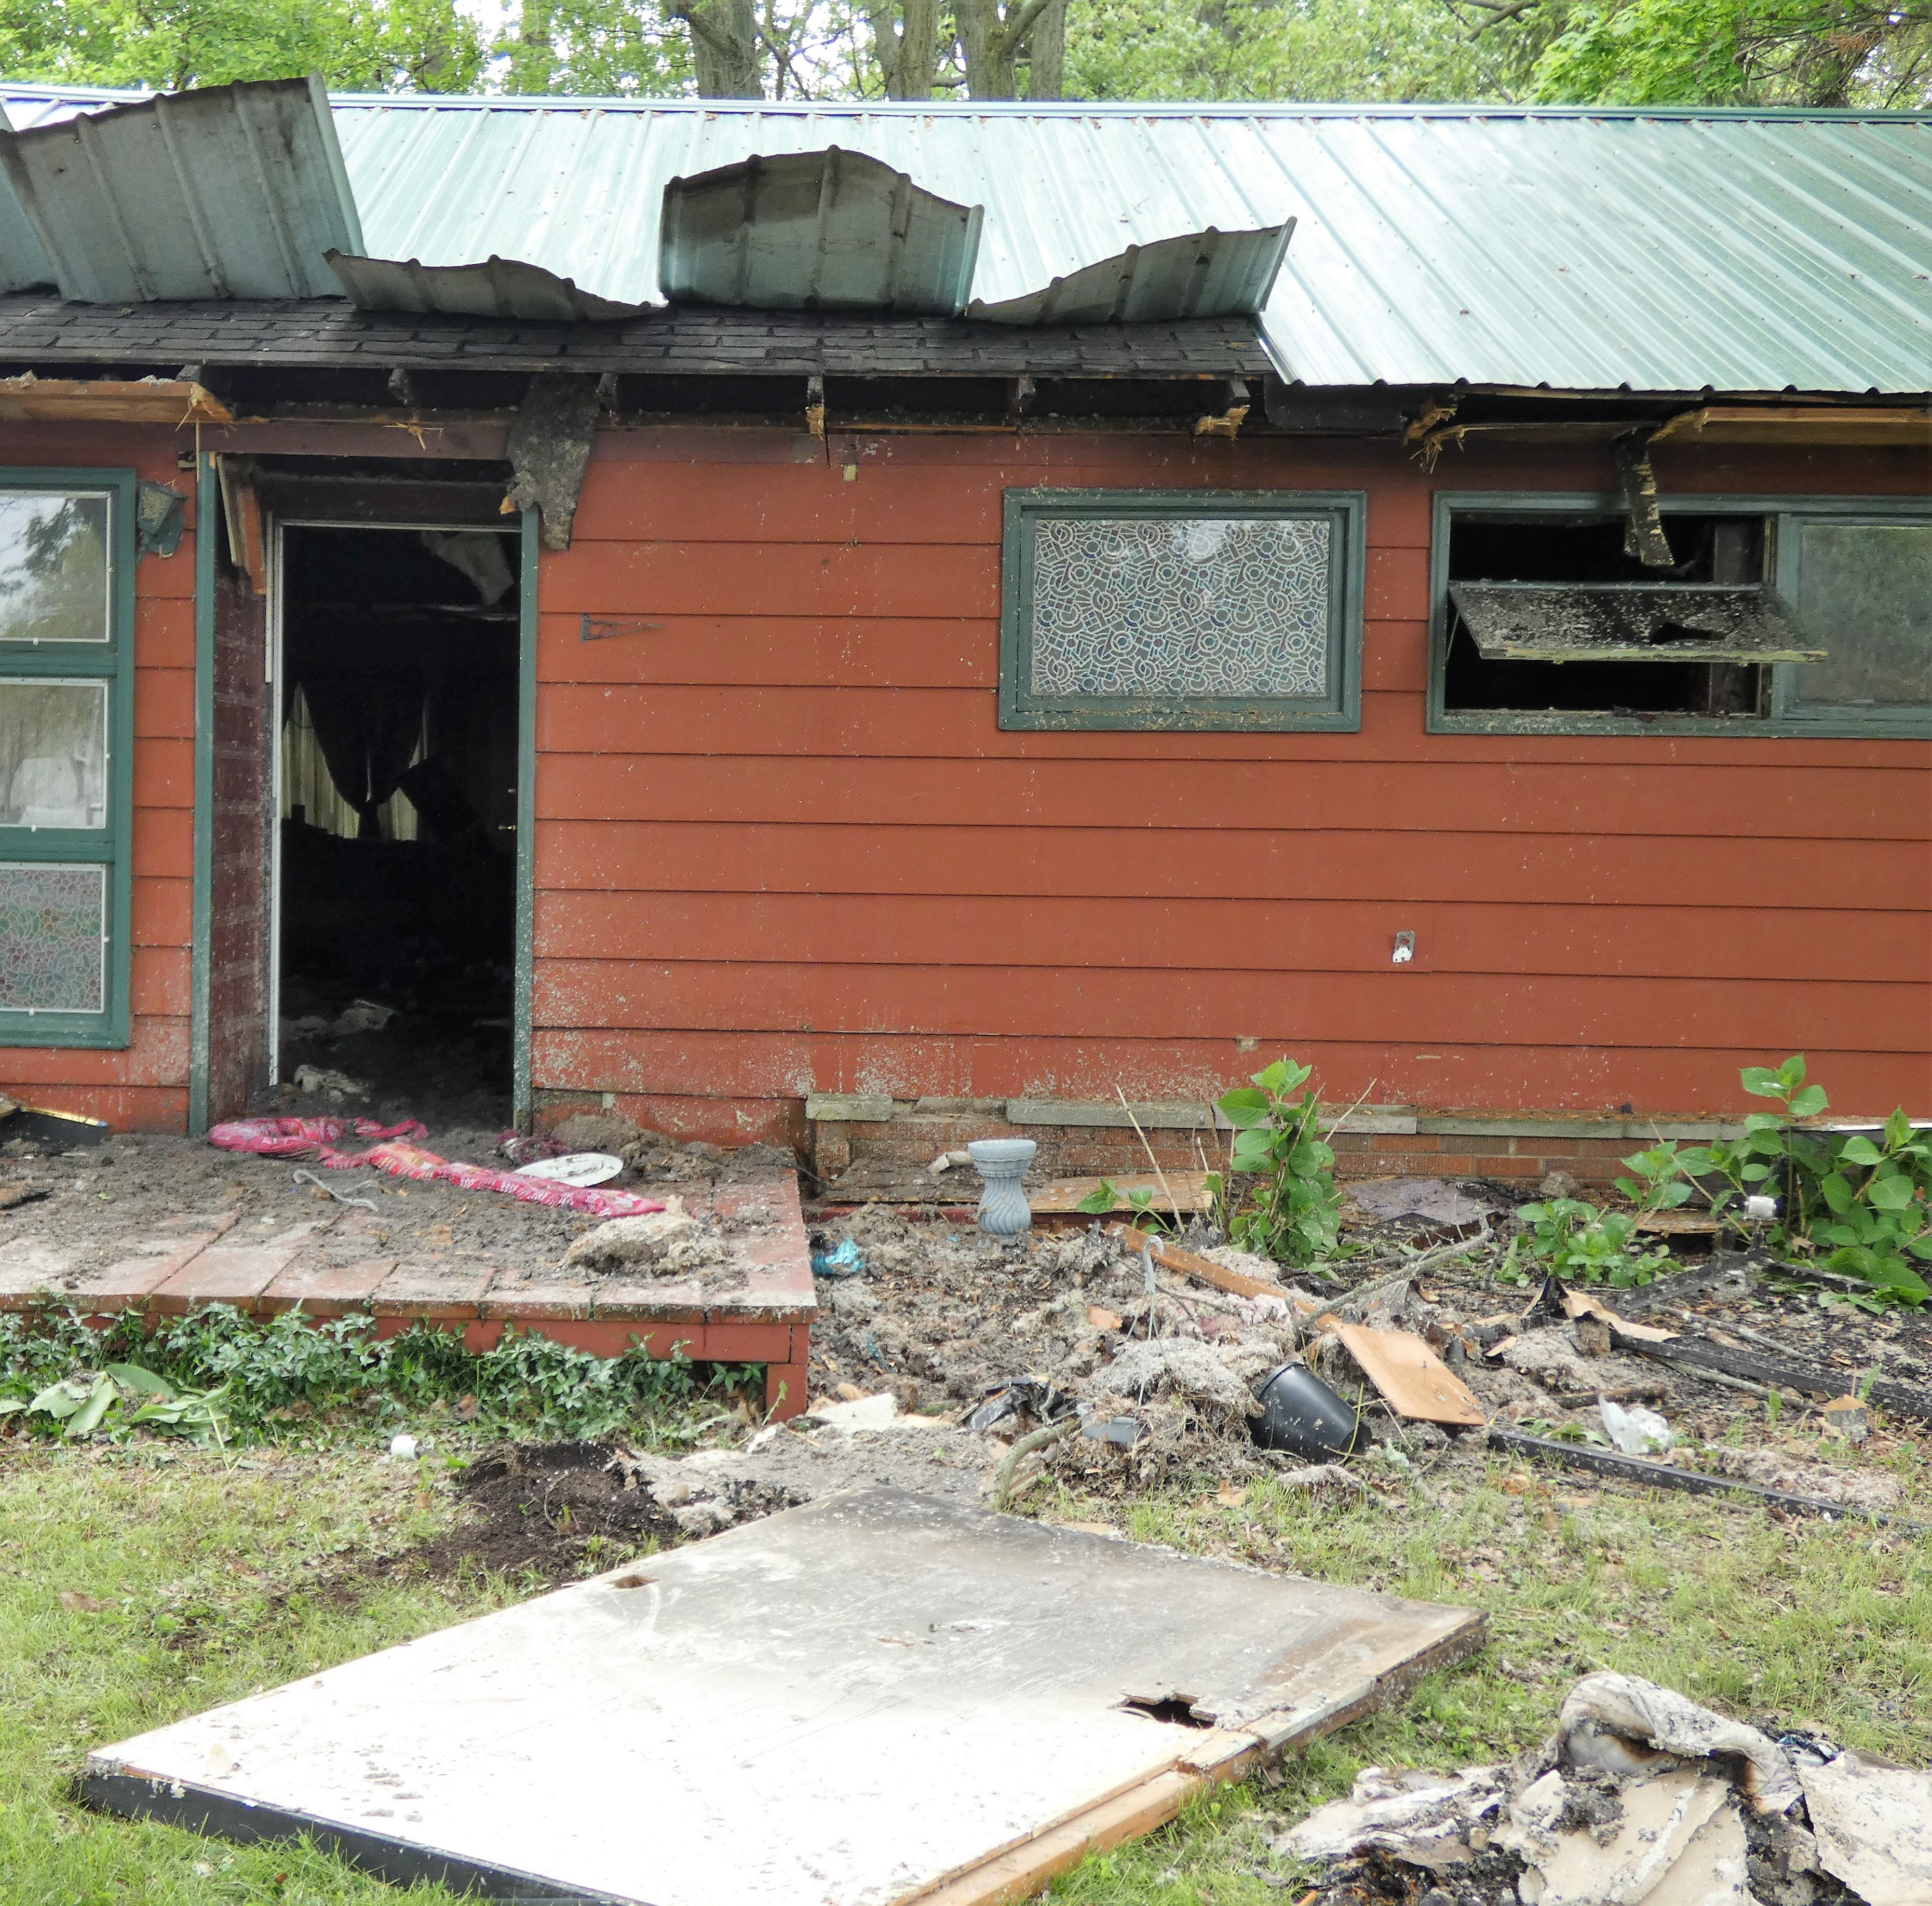 Arson suspected in Forest Lawn blaze in Marion